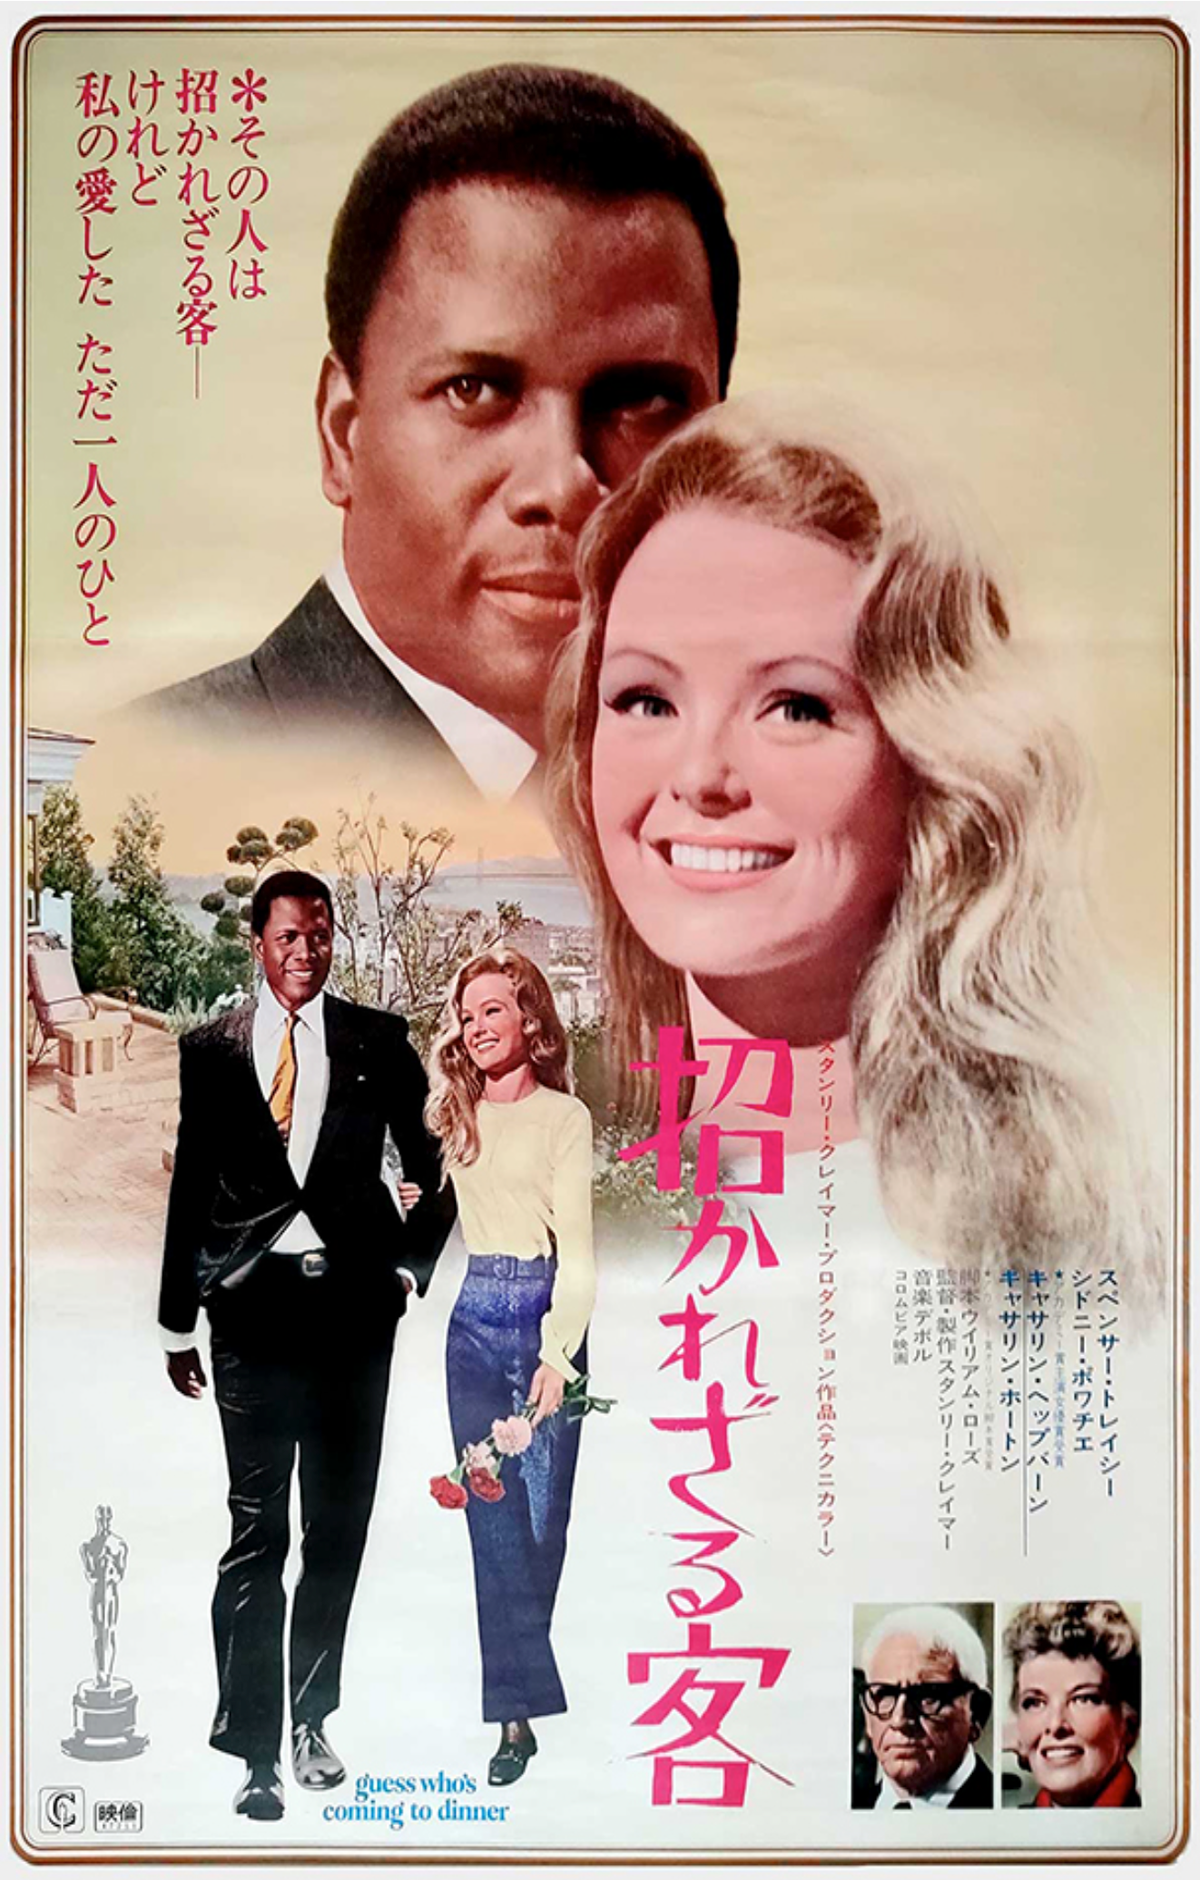 Guess Who's Coming To Dinner - Japanese Poster